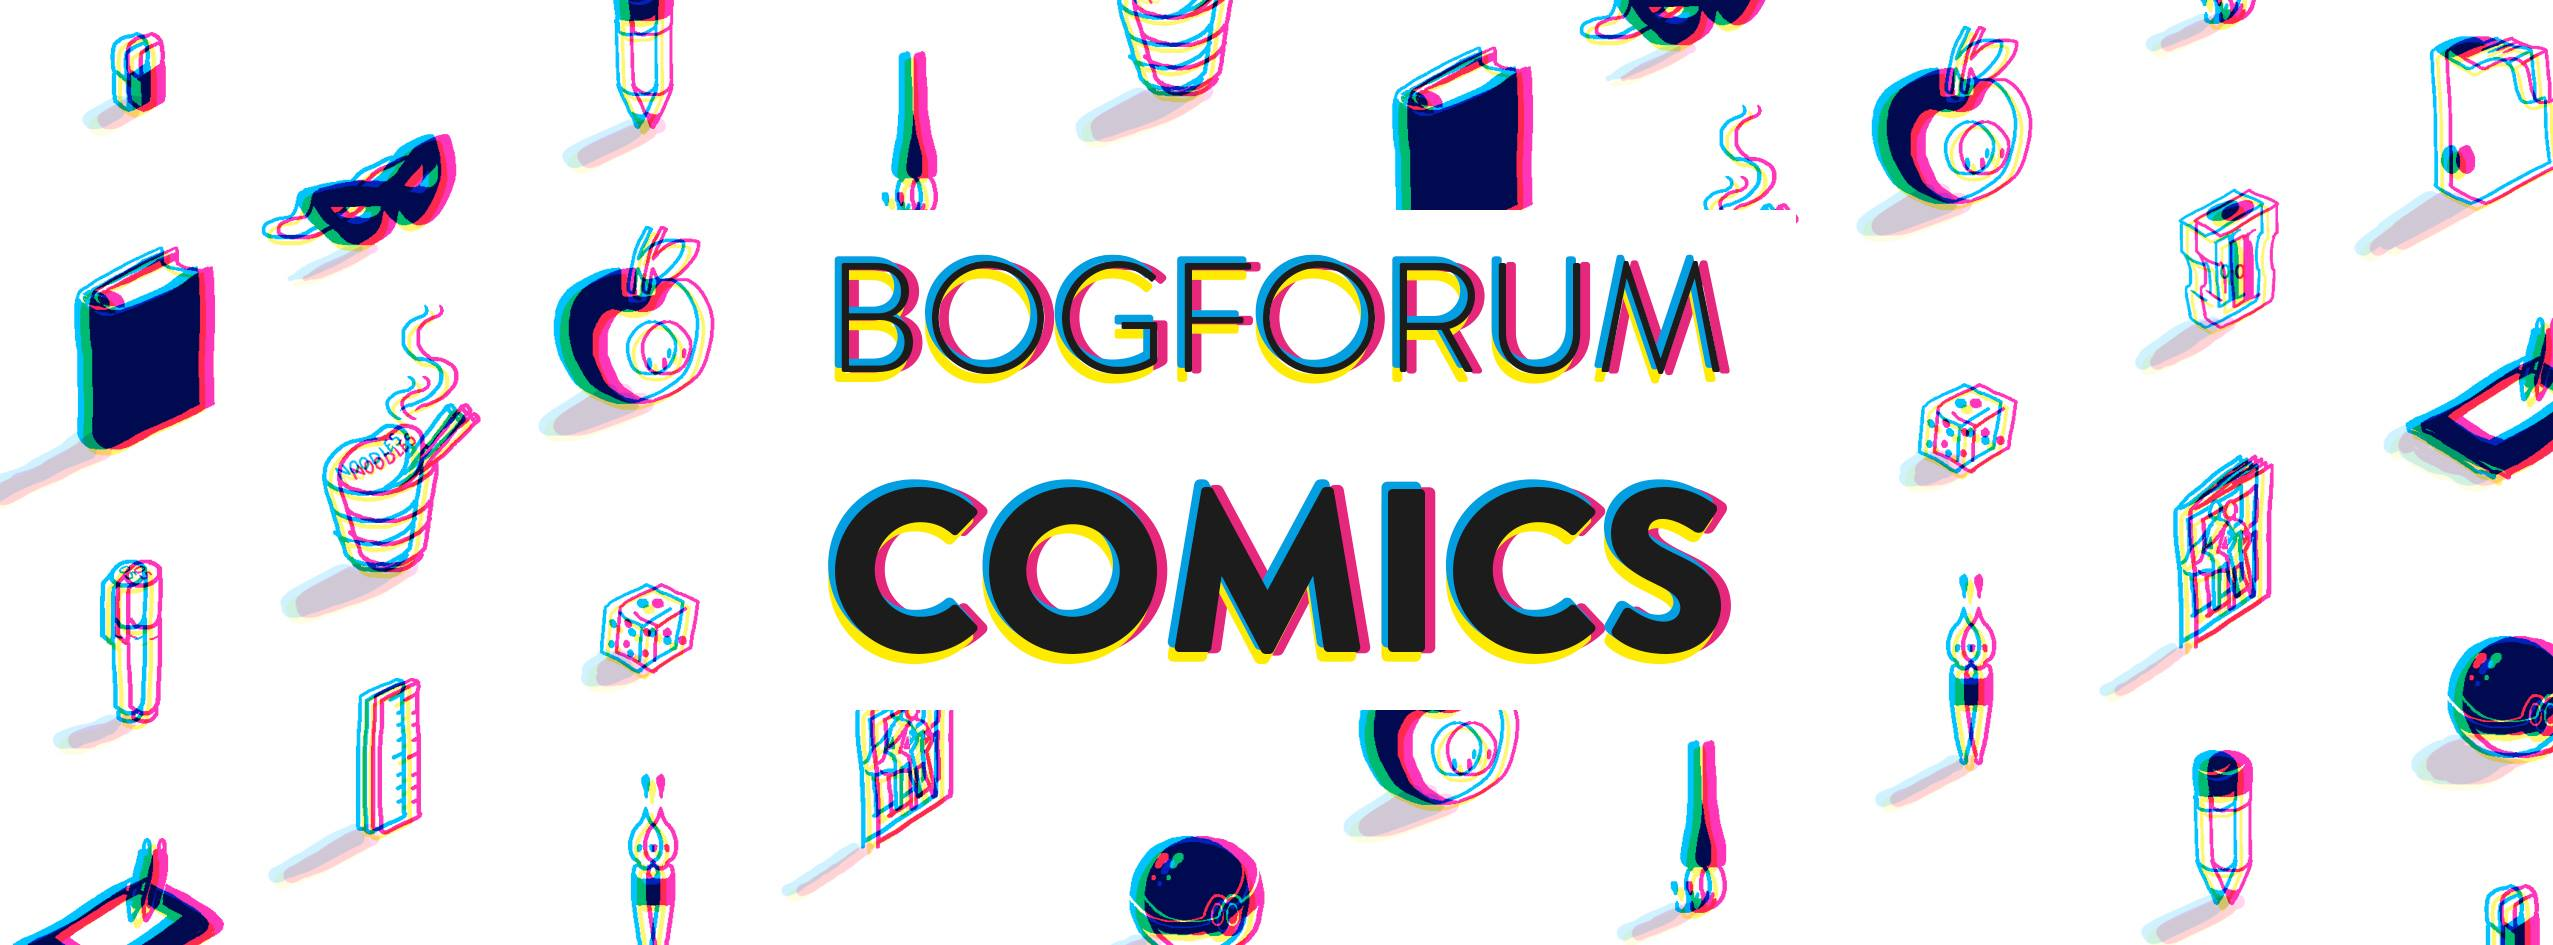 BogForum Comics